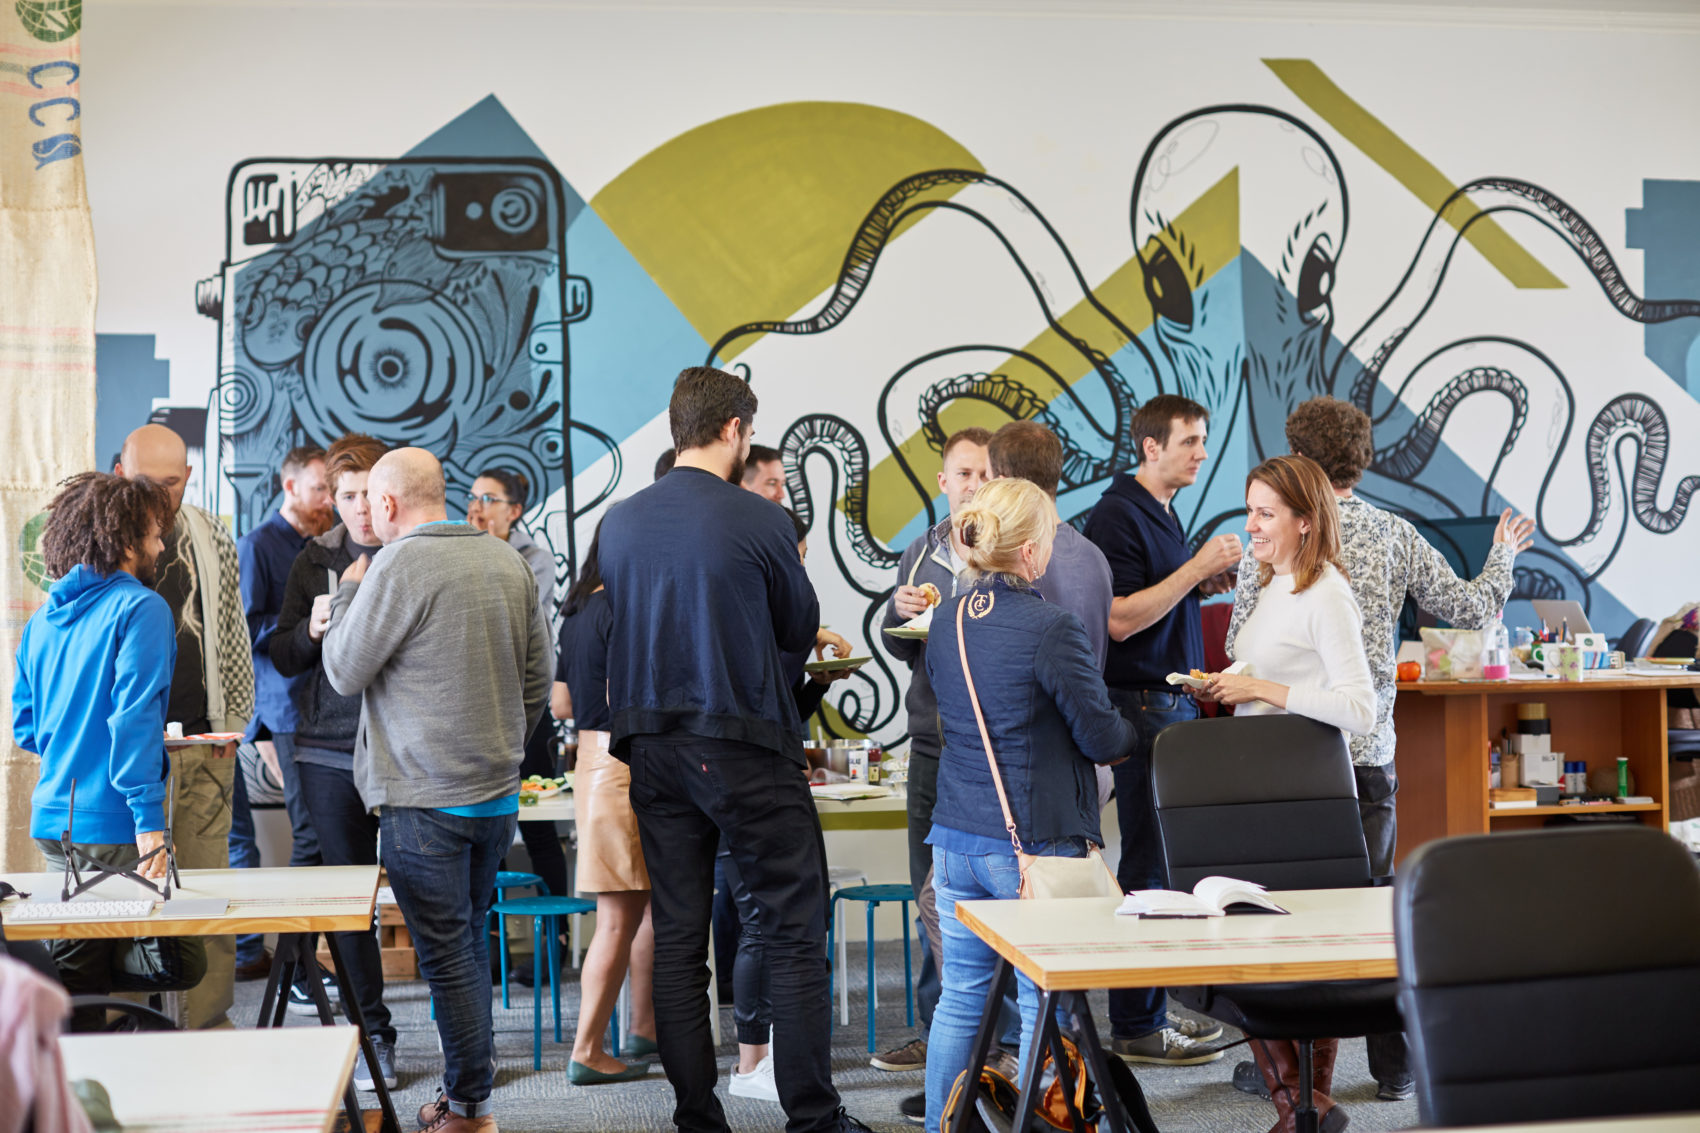 fSpace co-working space in the Princess Chambers Building, Market Street, Fremantle | Photo Credit: Sabine Albers